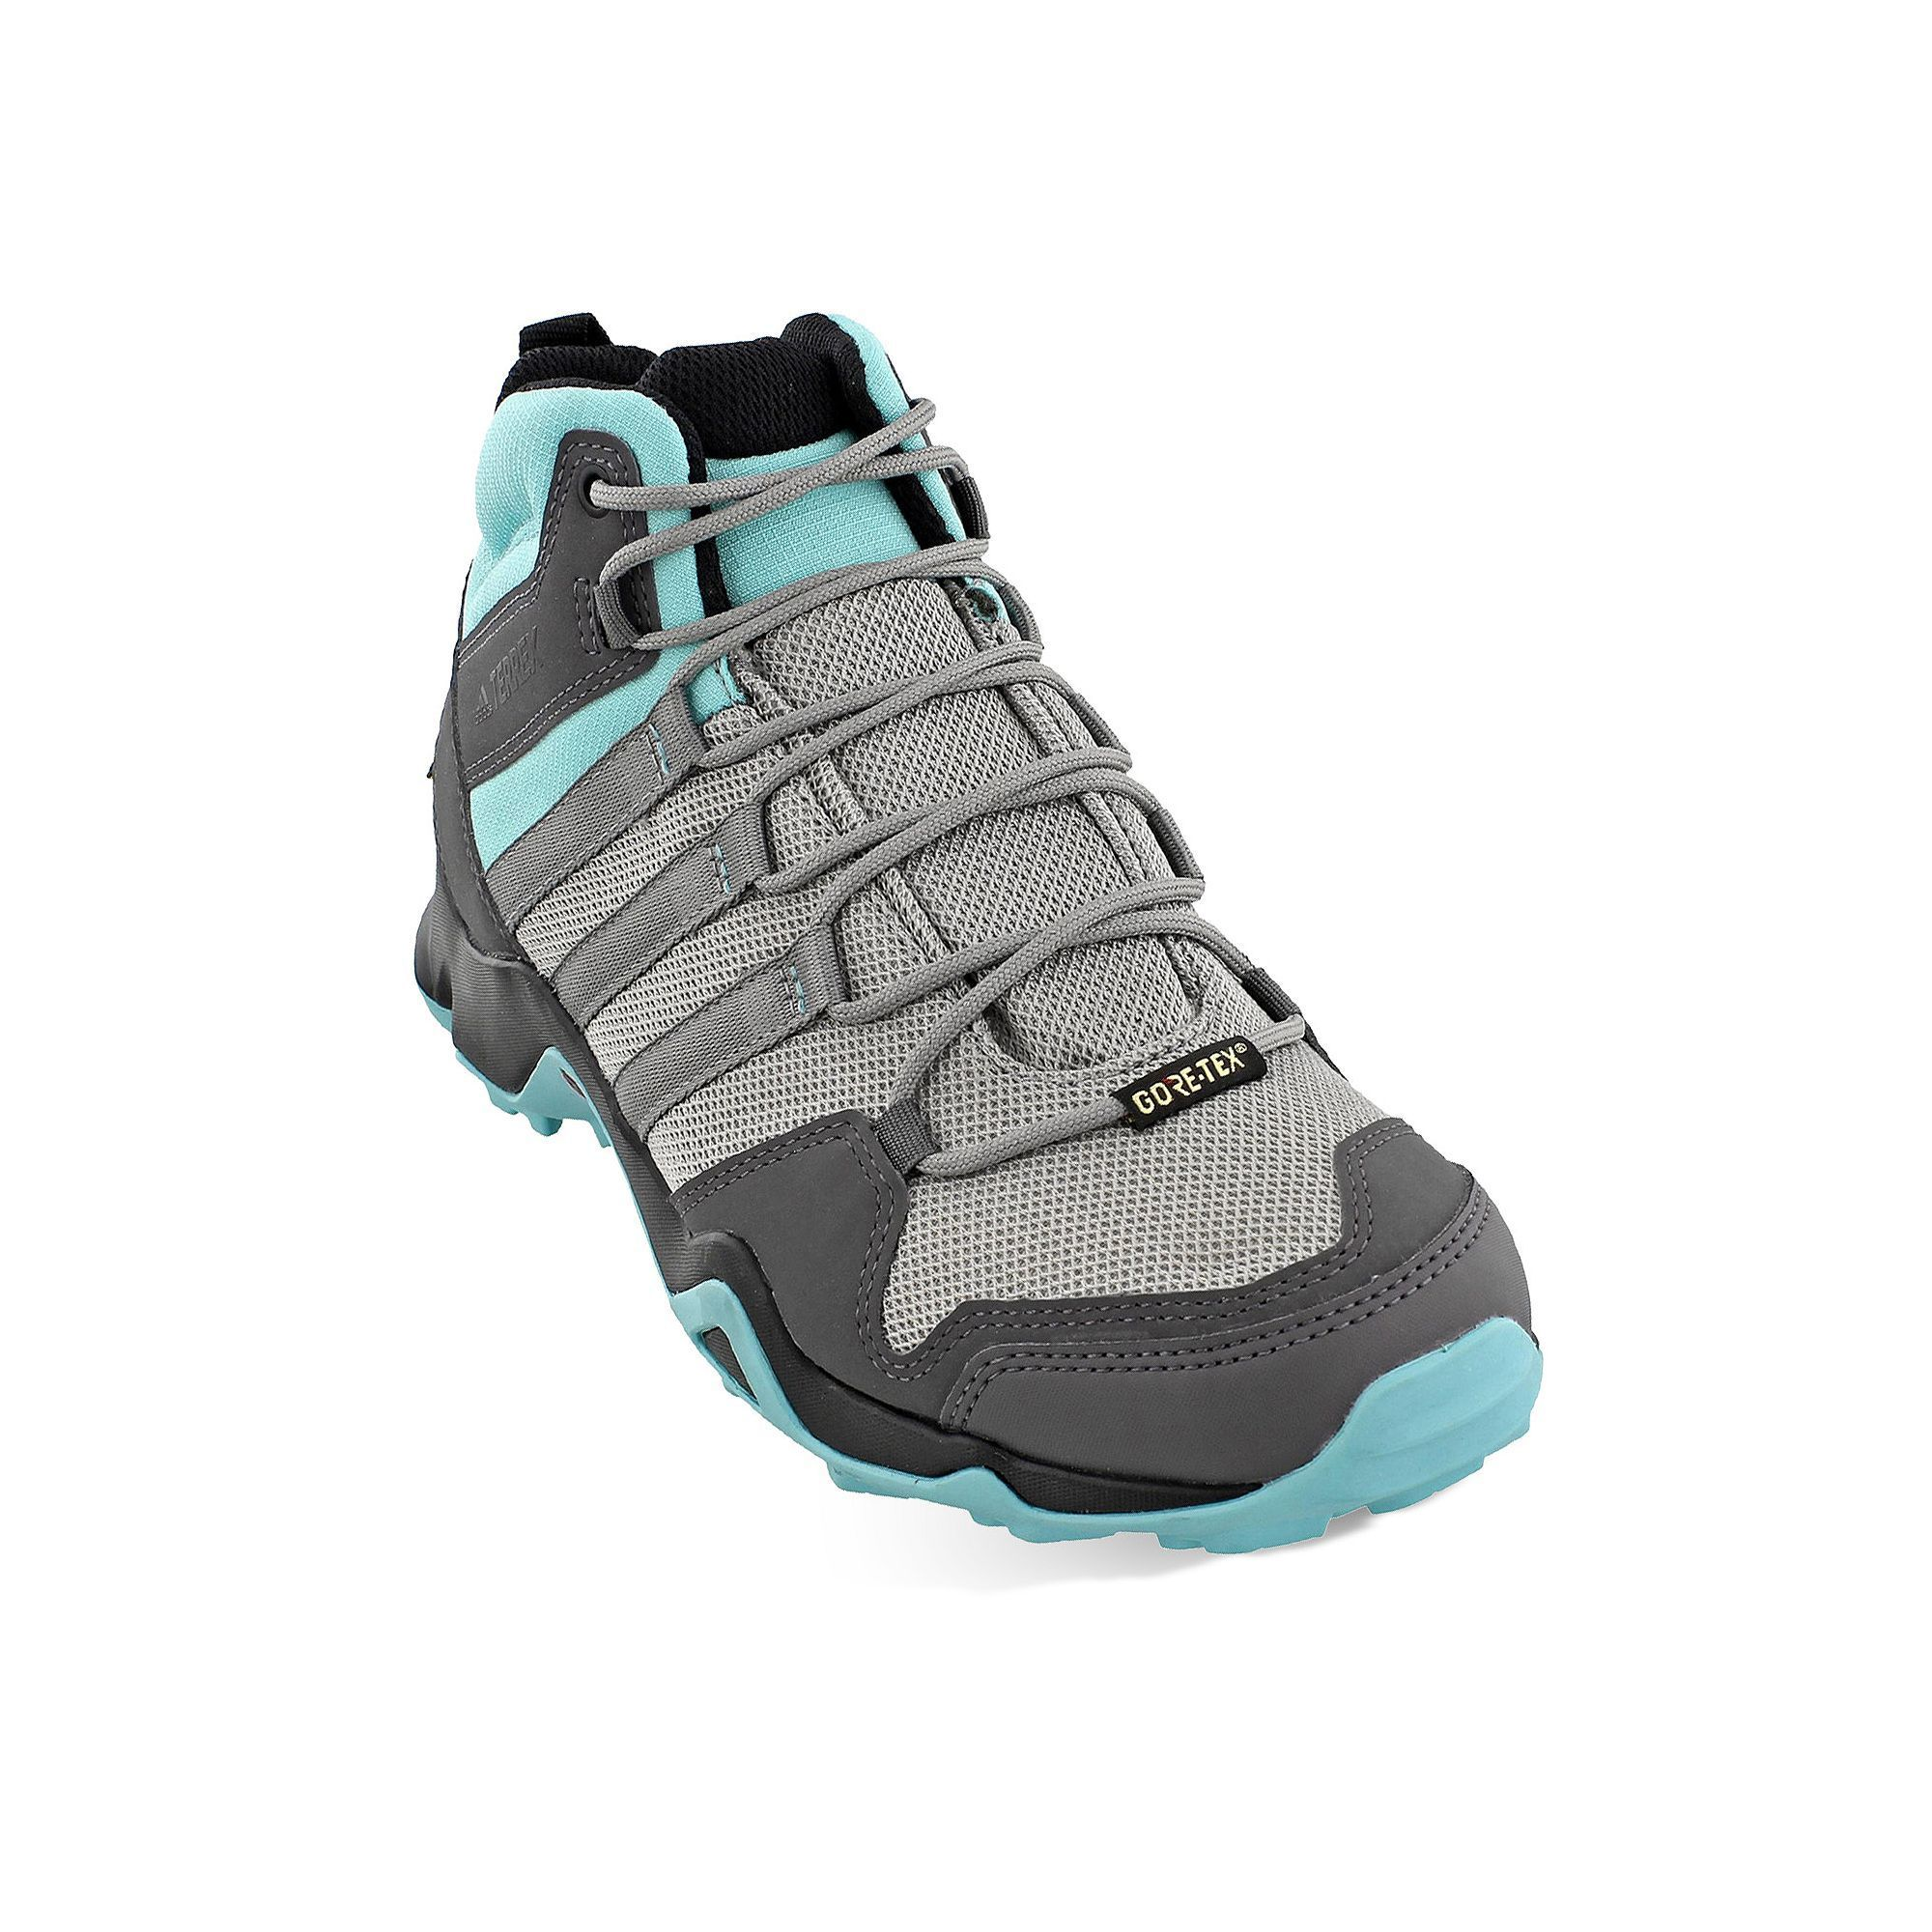 separation shoes 3fd31 749b3 Adidas Outdoor Terrex AX2R Mid Gore-Tex Women s Waterproof Hiking Shoes,  Size  7.5, Grey